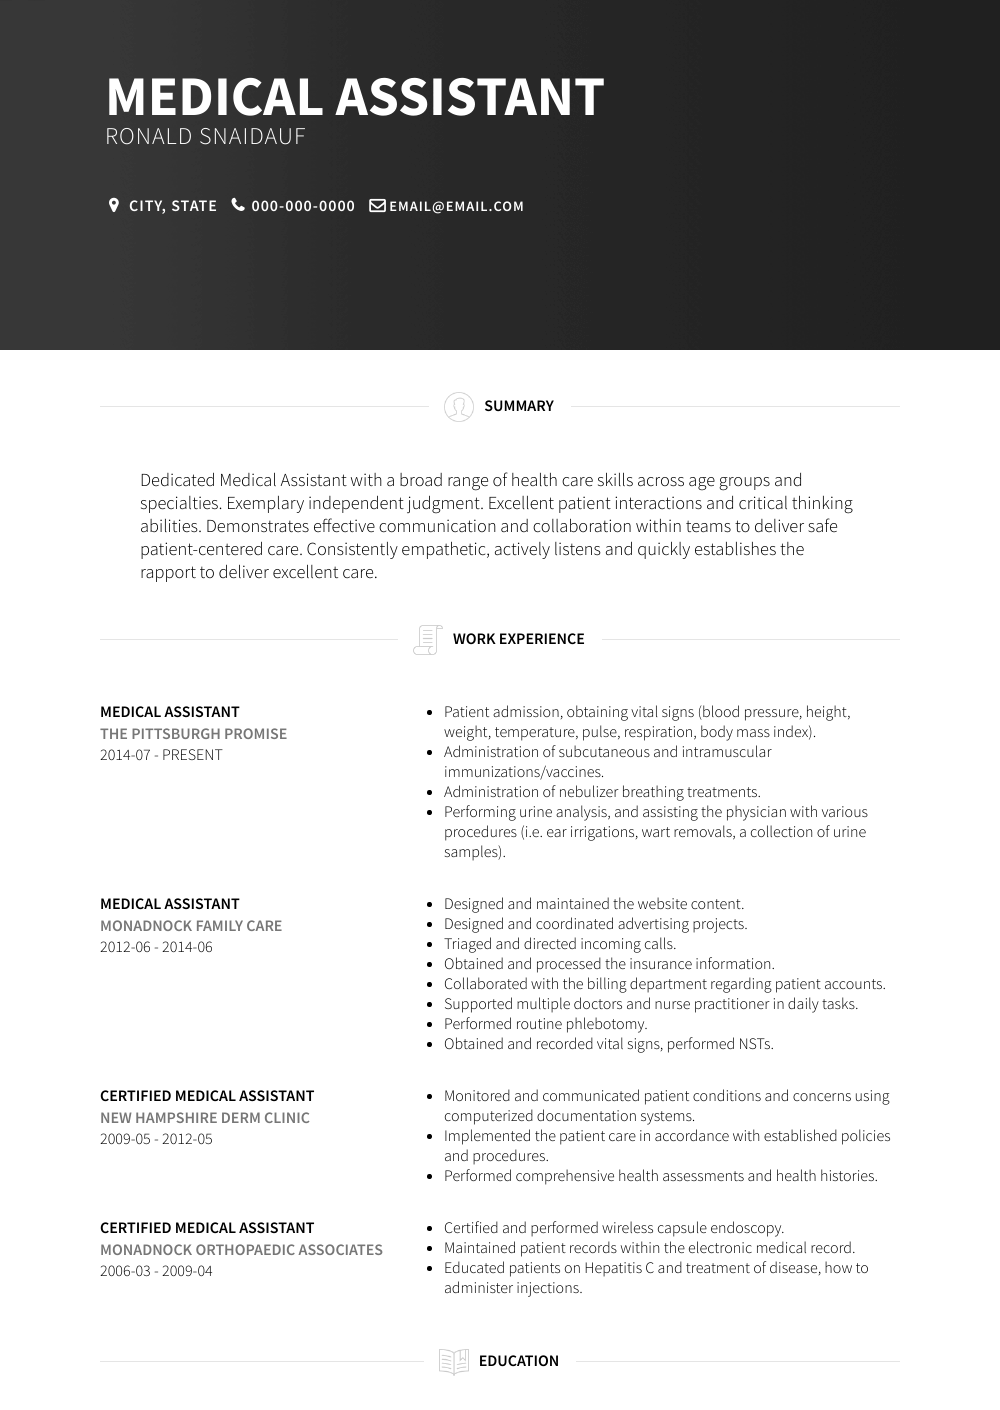 Medical Assistant Resume Samples And Templates Visualcv